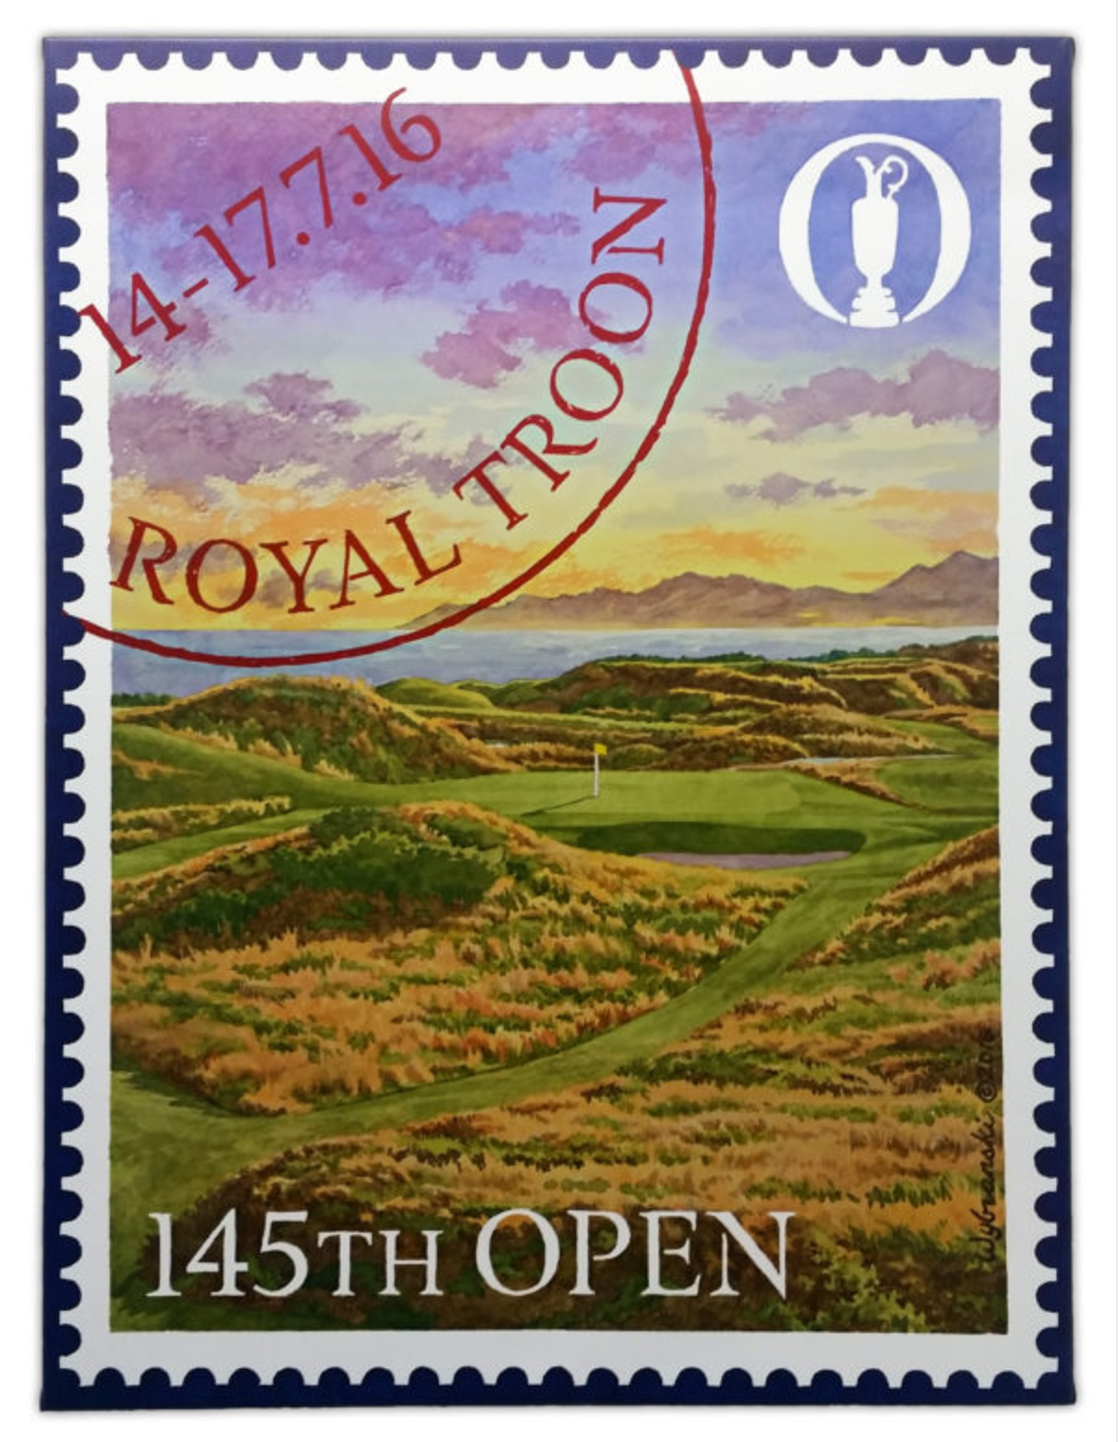 The Open Royal Troon 2016